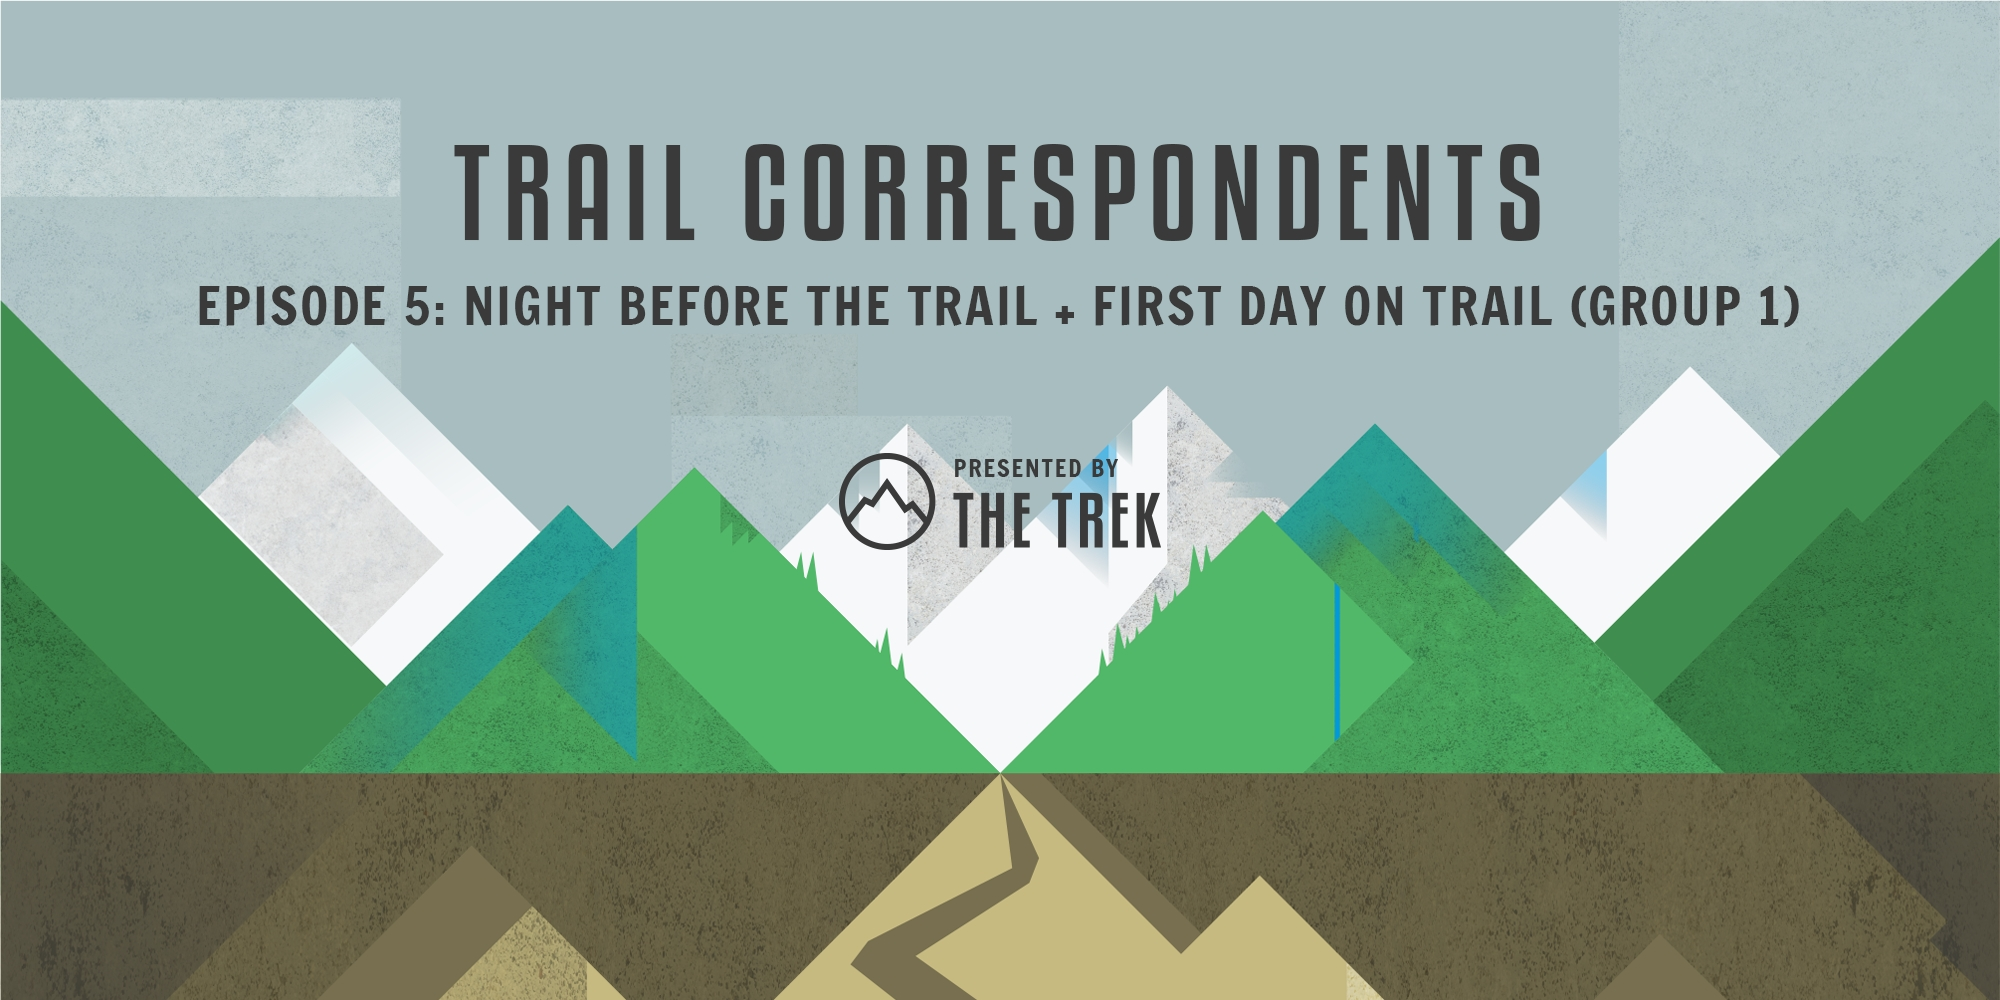 Trail Correspondents Episode #5 | Night Before the Trail + First Day on Trail (Group 1)